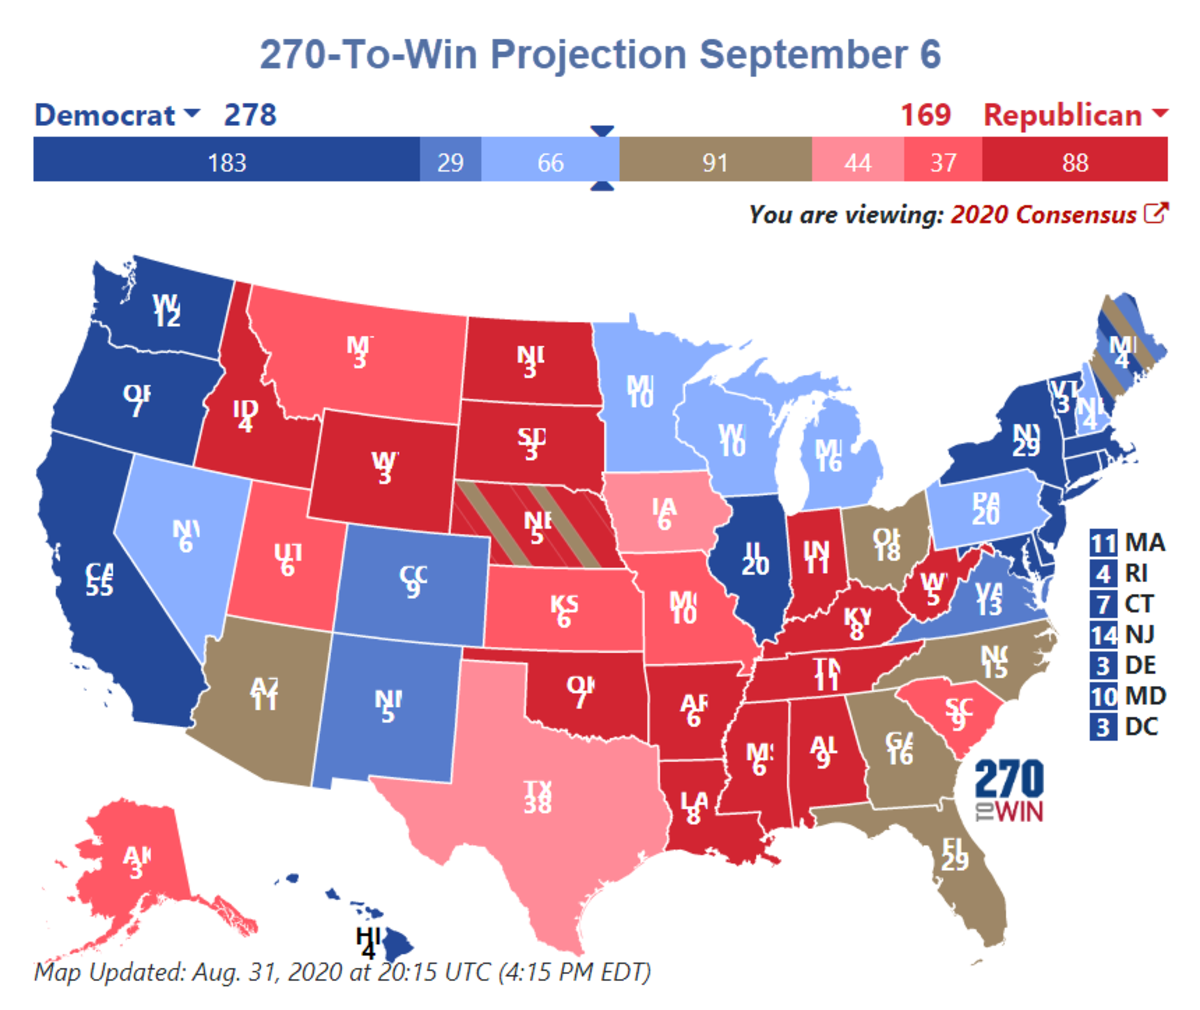 270-To-Win Projection September 6